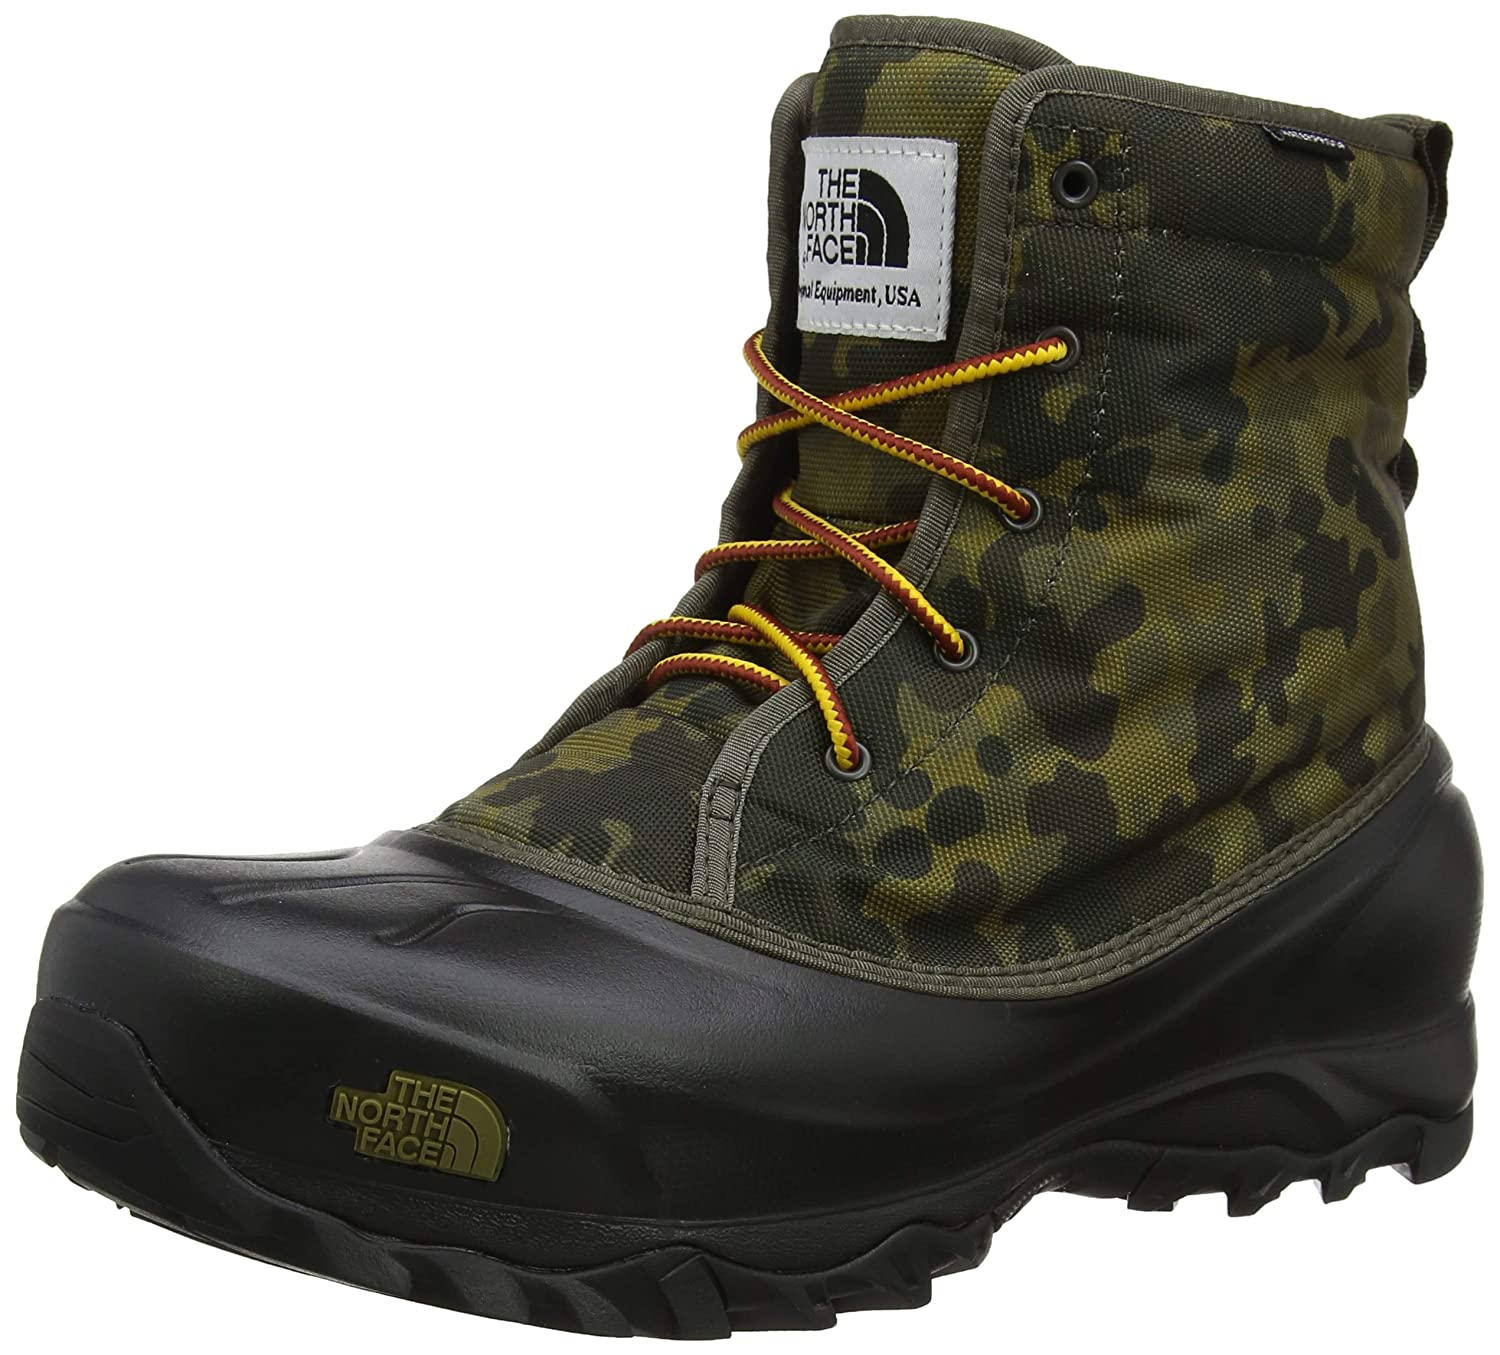 TALLA 42 EU. The North Face Men's Tsumoru Boot, Botas de Nieve para Hombre